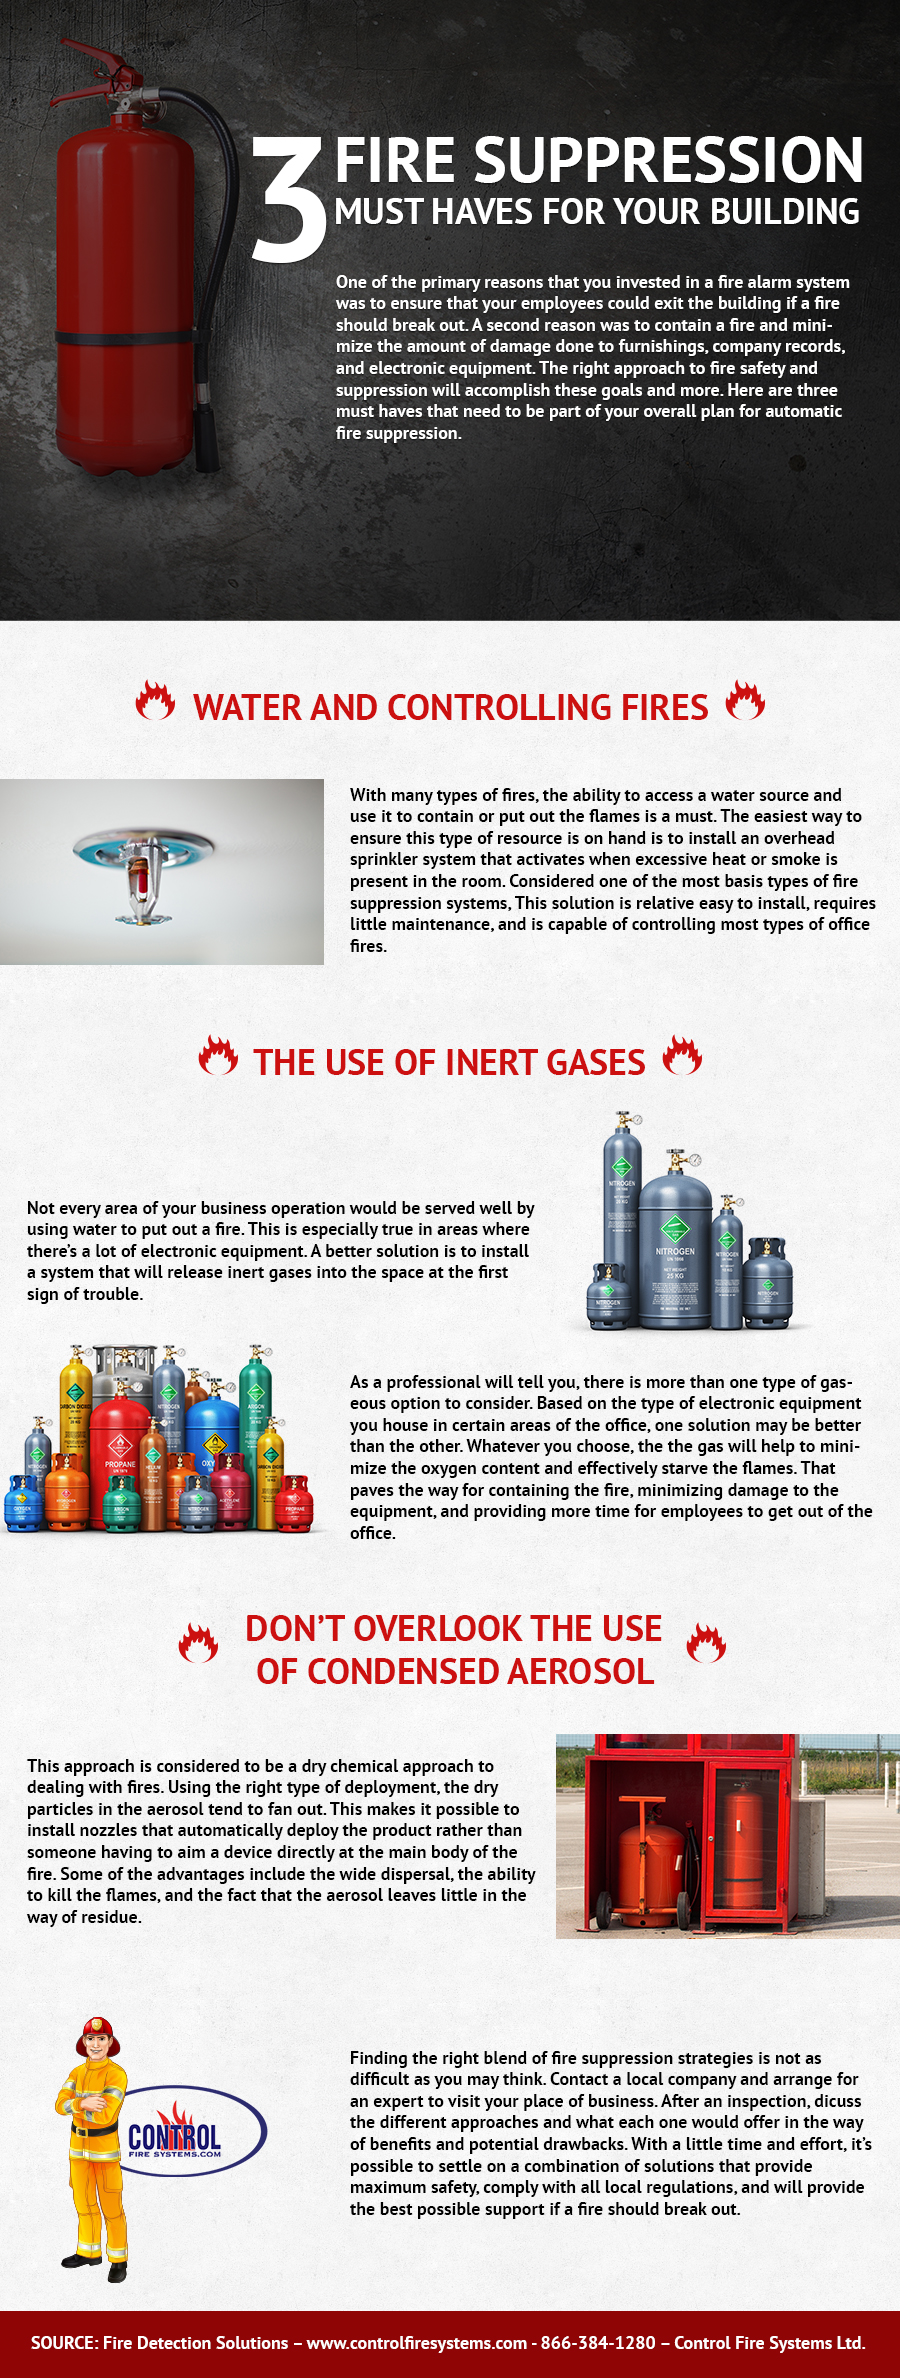 3 Fire Suppression Must Haves for Your Building - Control Fire Systems Ifographic